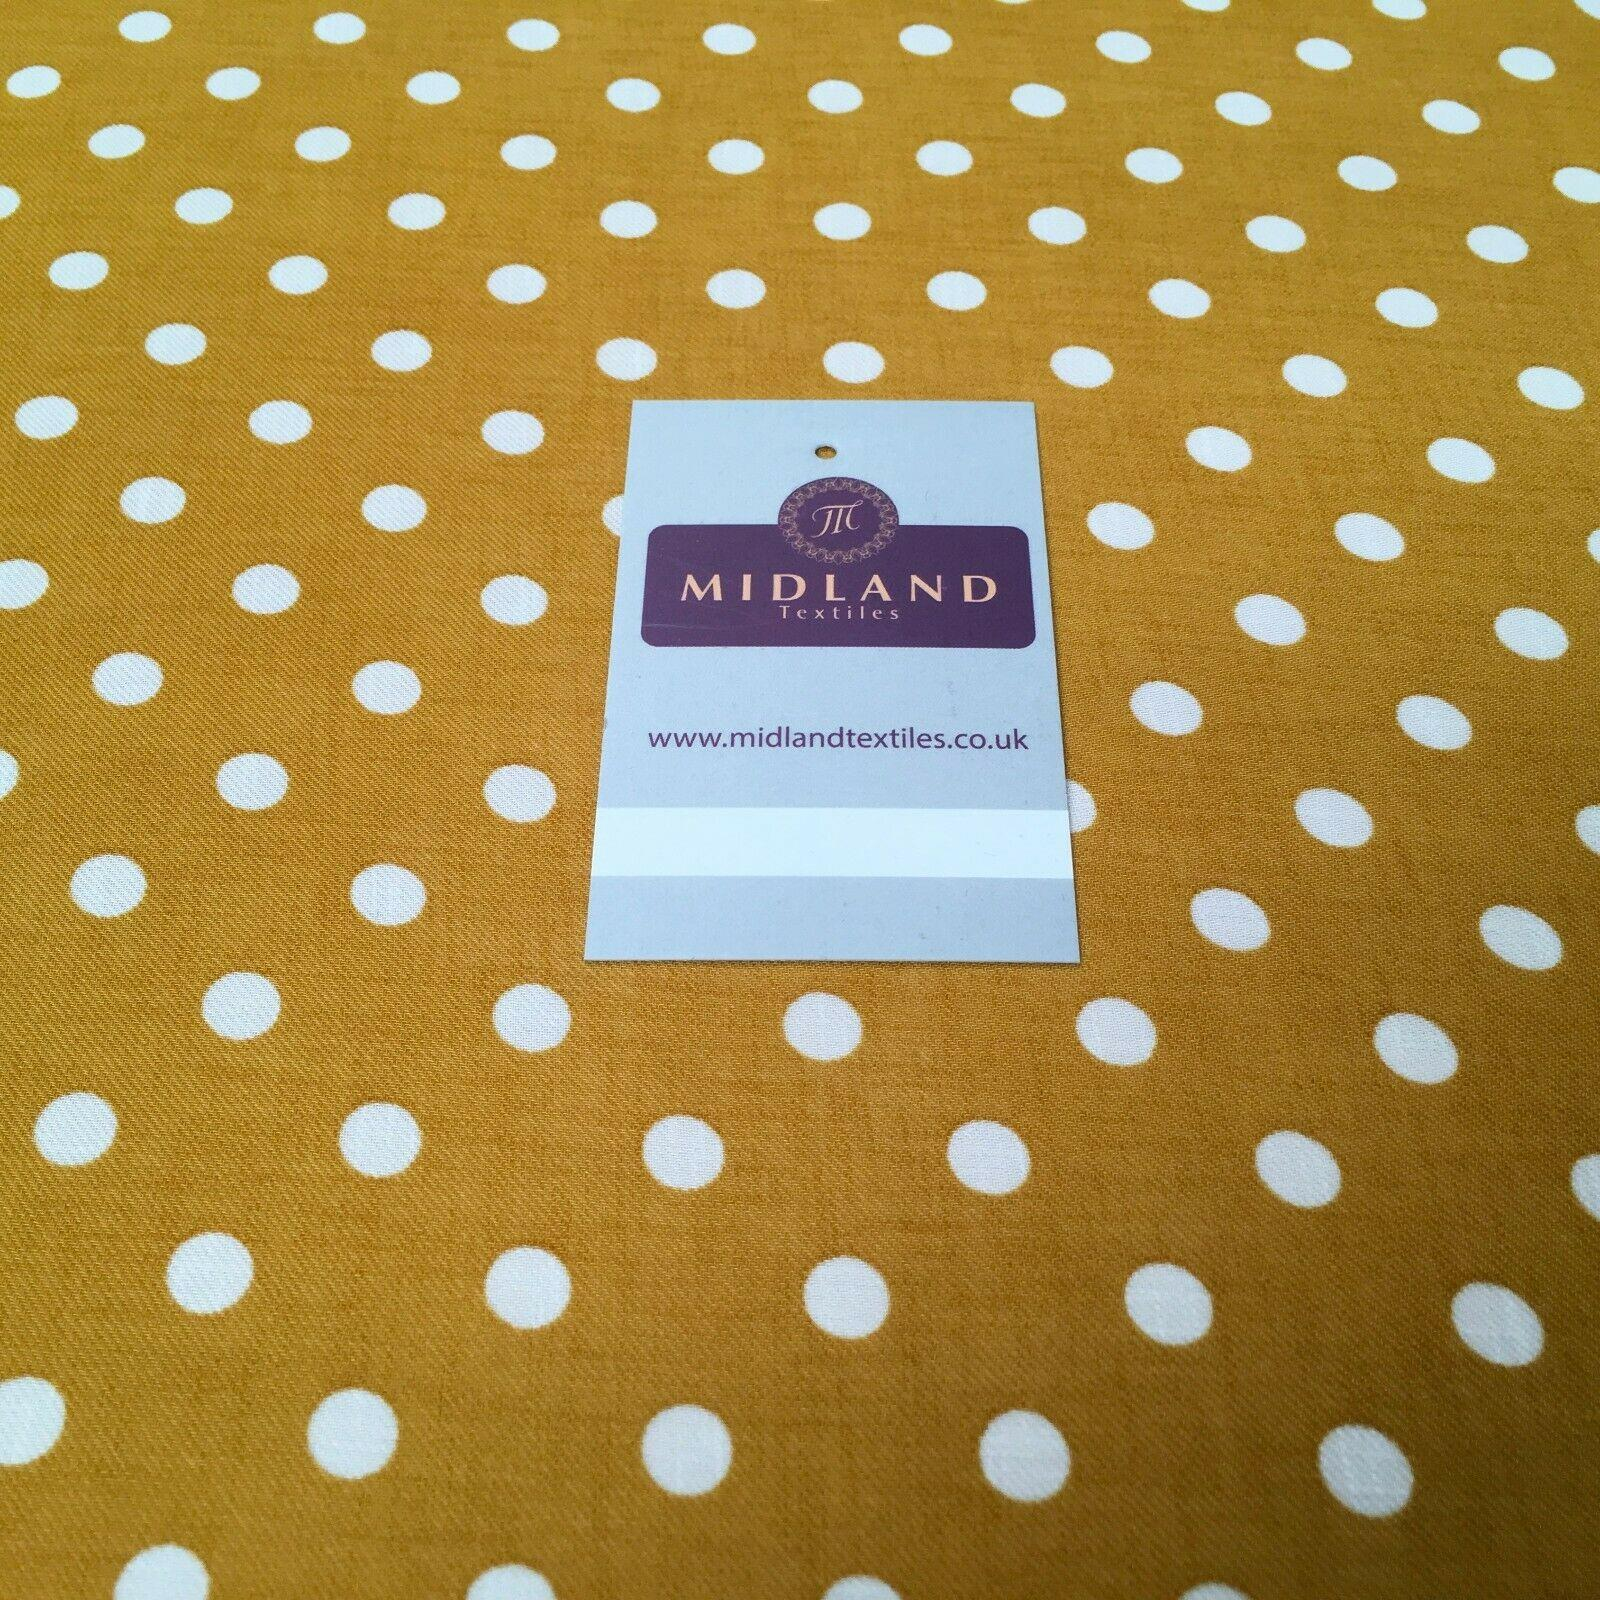 Ochre Spot Georgette crepe Linen effect dress Fabric 150cm wide MK1095-24